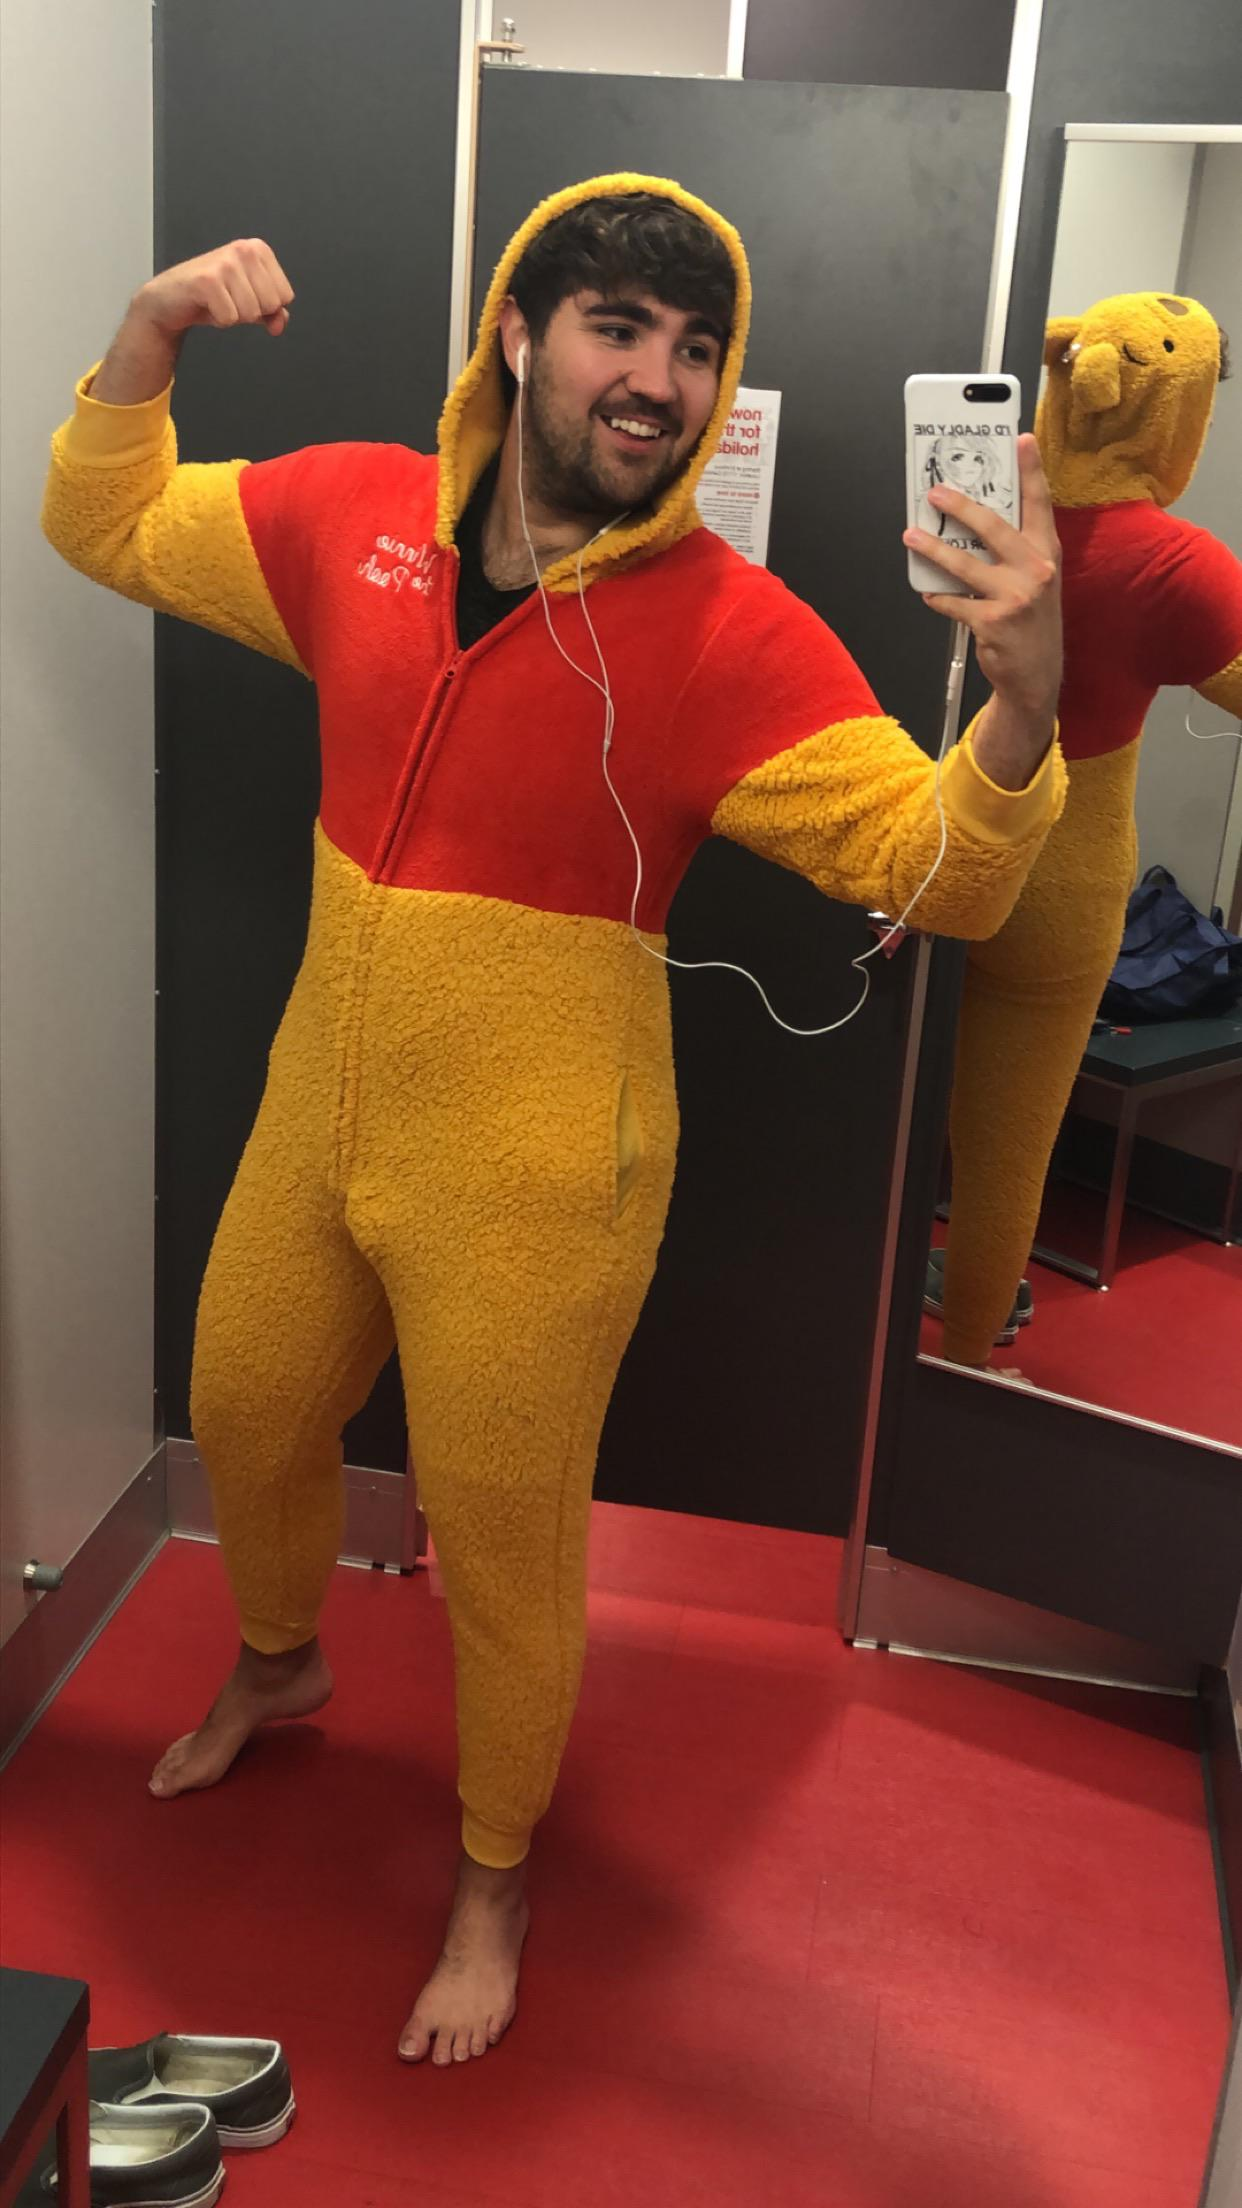 Target started selling Xi Jinping costumes! Just in time for Halloween!